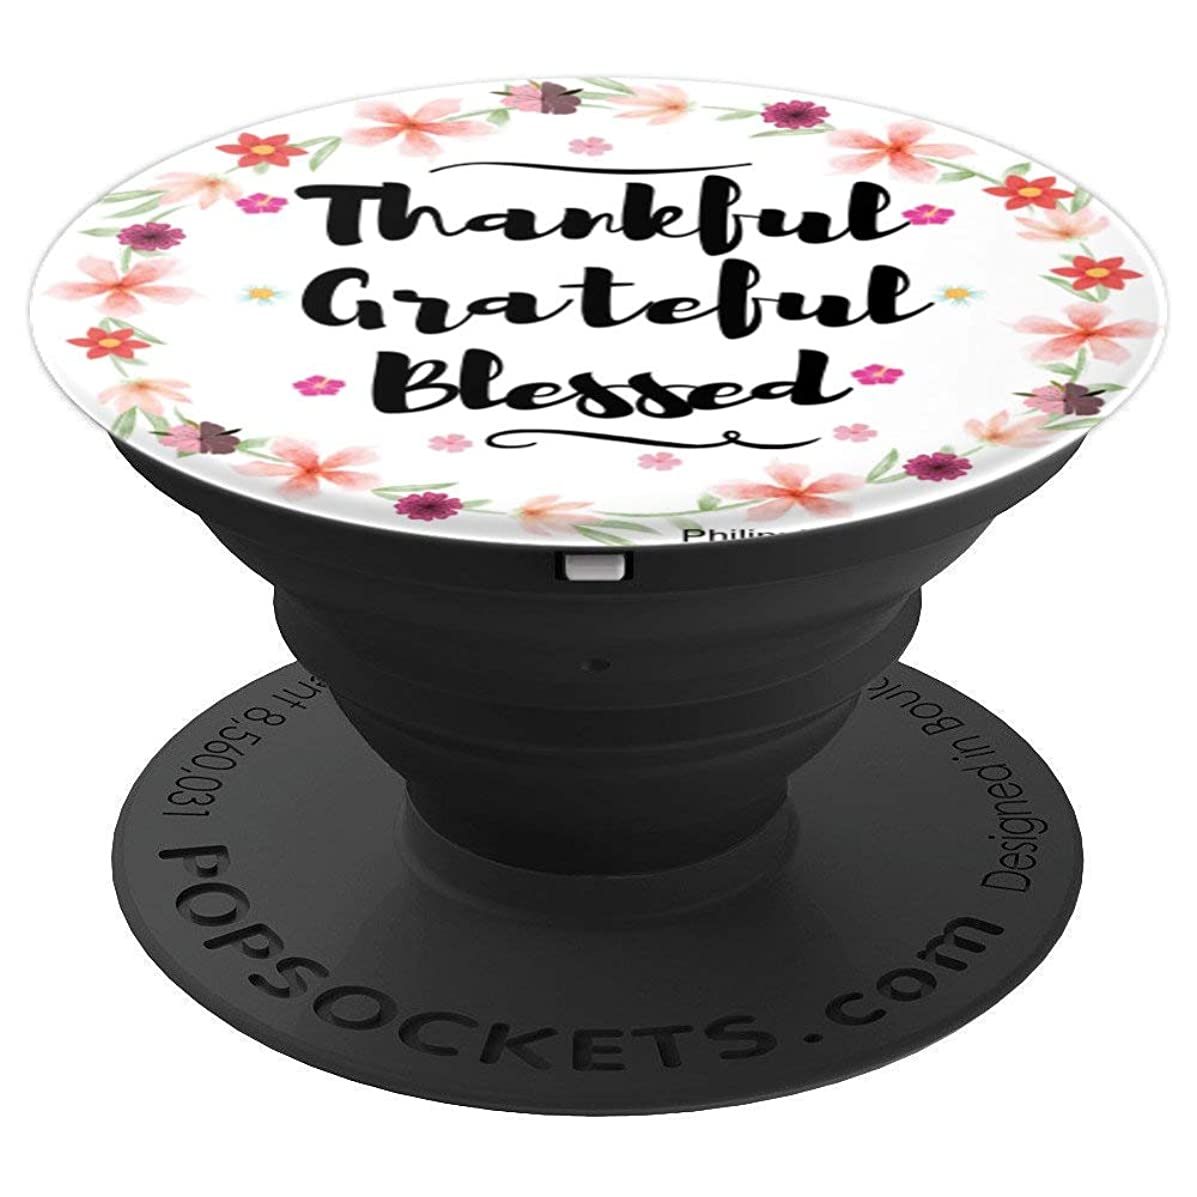 Thankful Grateful Blessed Cell Phone Grip Mount Holder - PopSockets Grip and Stand for Phones and Tablets